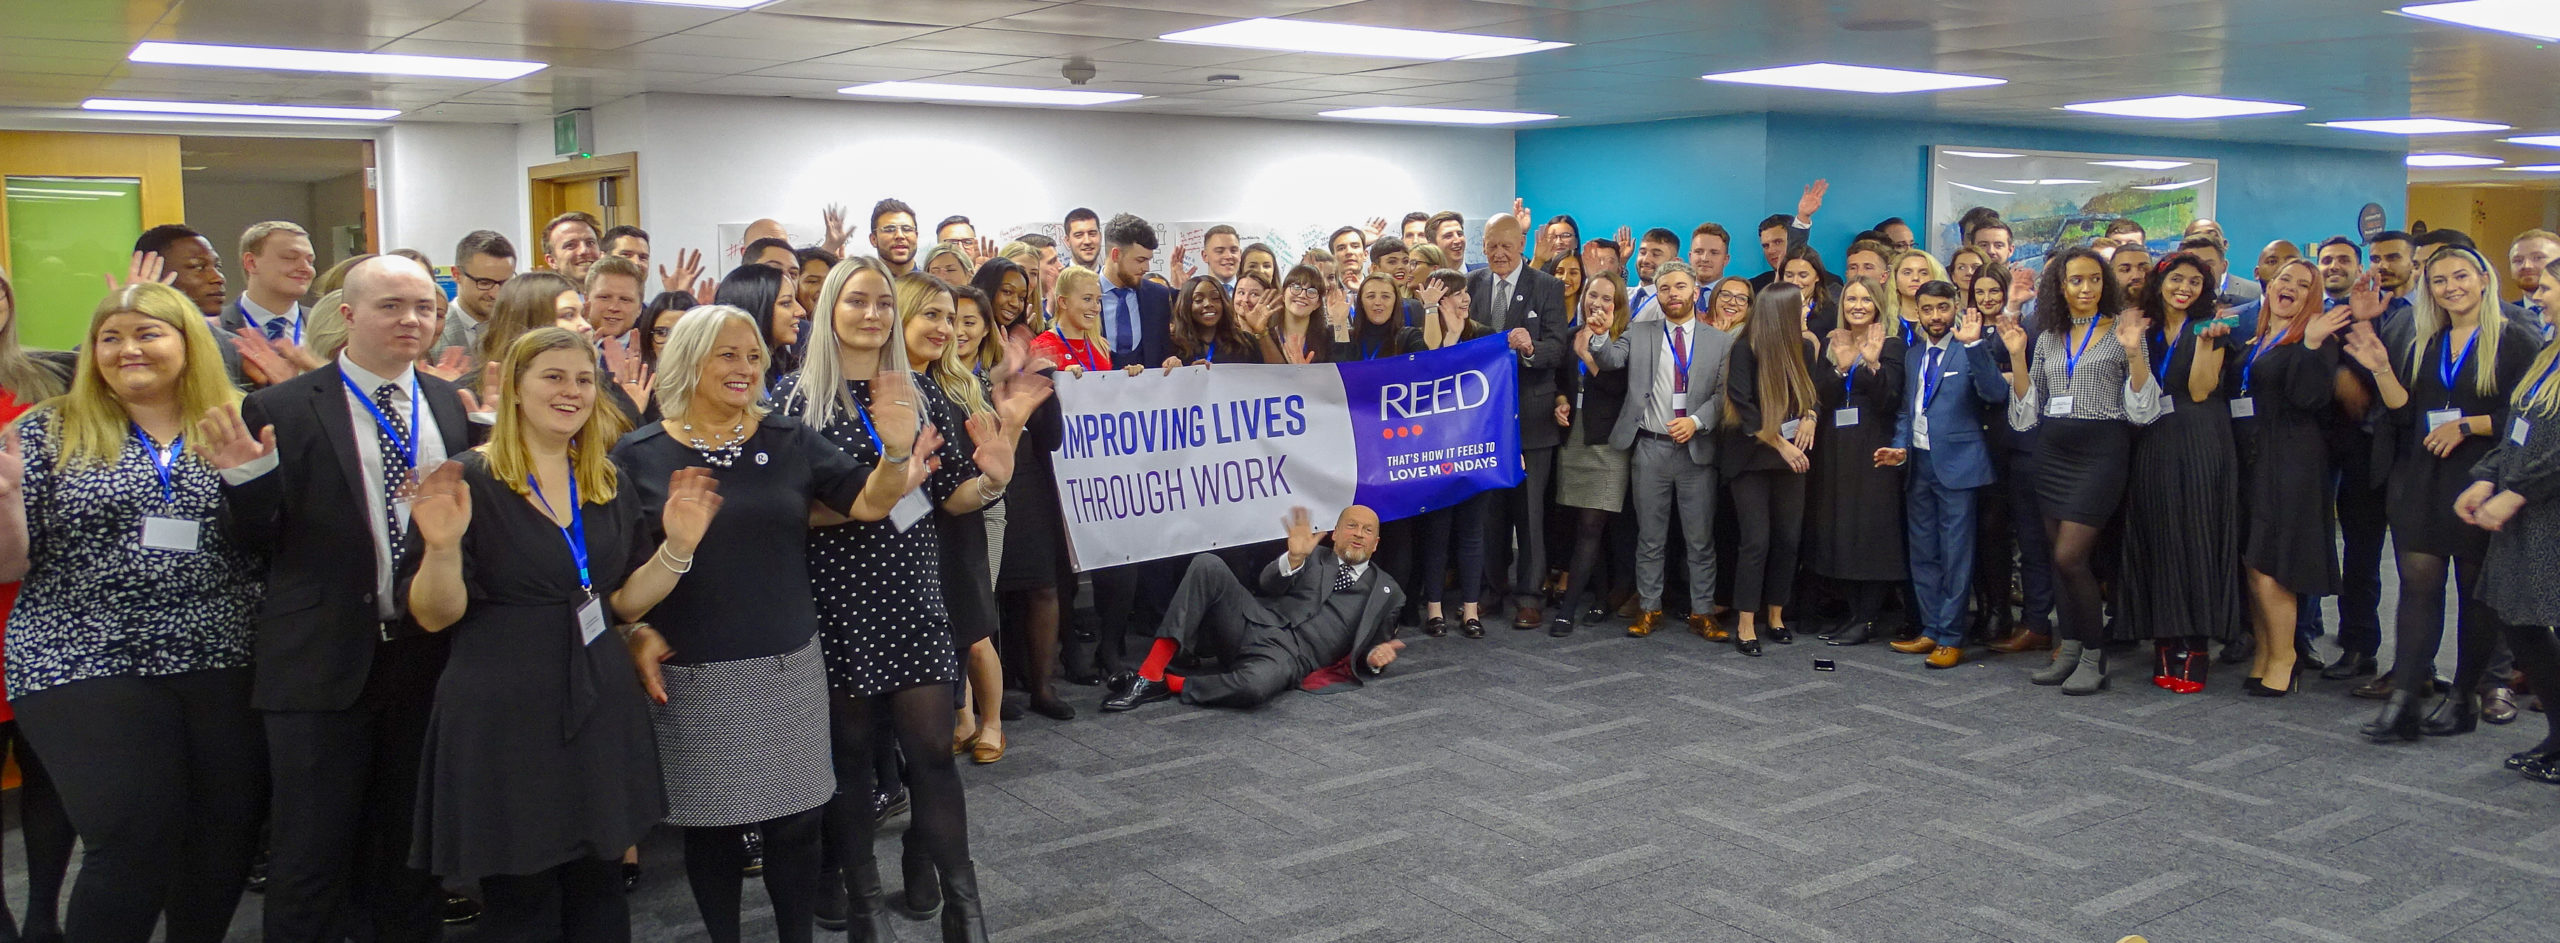 Apprenticeship Take Off Celebration event 2020 with James Reed CEO